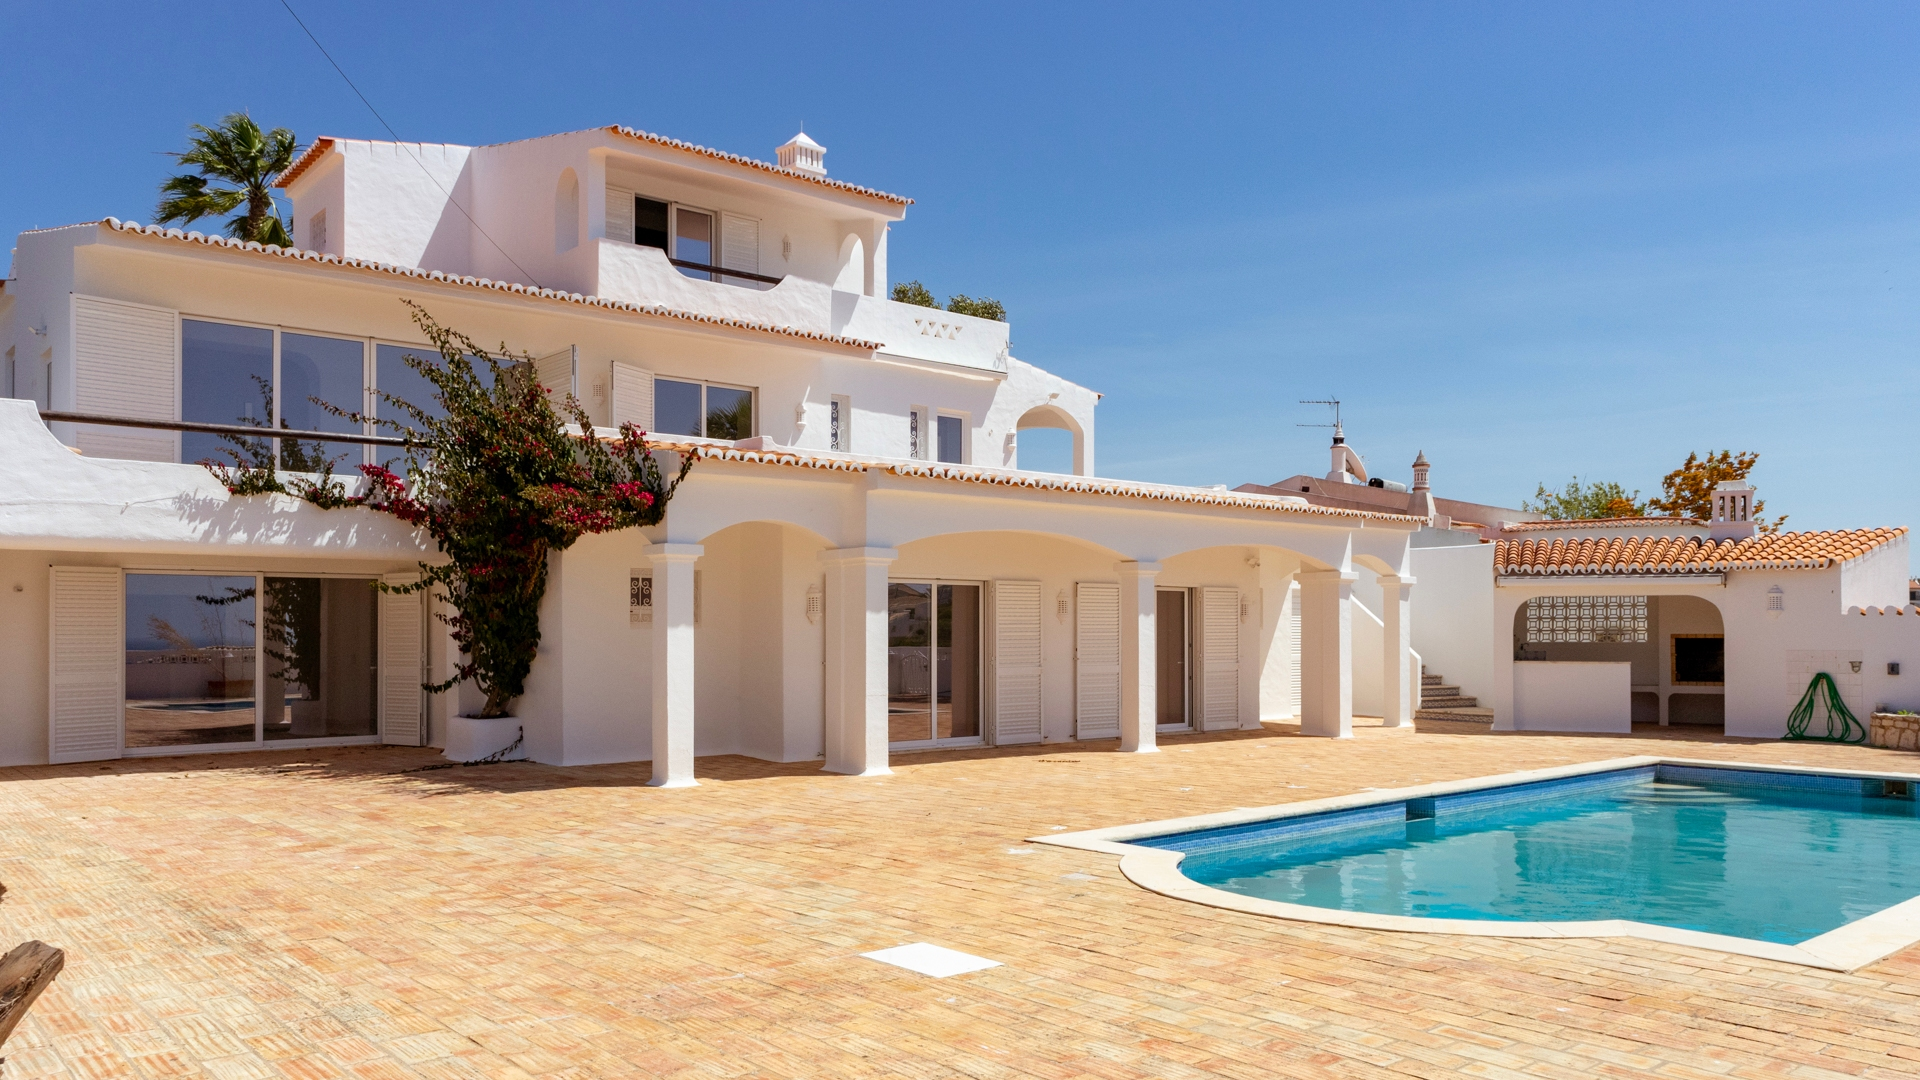 4 Bedroom Villa with Pool and Sea Views from all rooms, Carvoeiro | VM1462 This villa with 4 en-suite bedrooms is located in an elevated position with views over Carvoeiro and to the sea. The old fishing village with beach, cafes, restaurants and all amenities is only 300 m far.